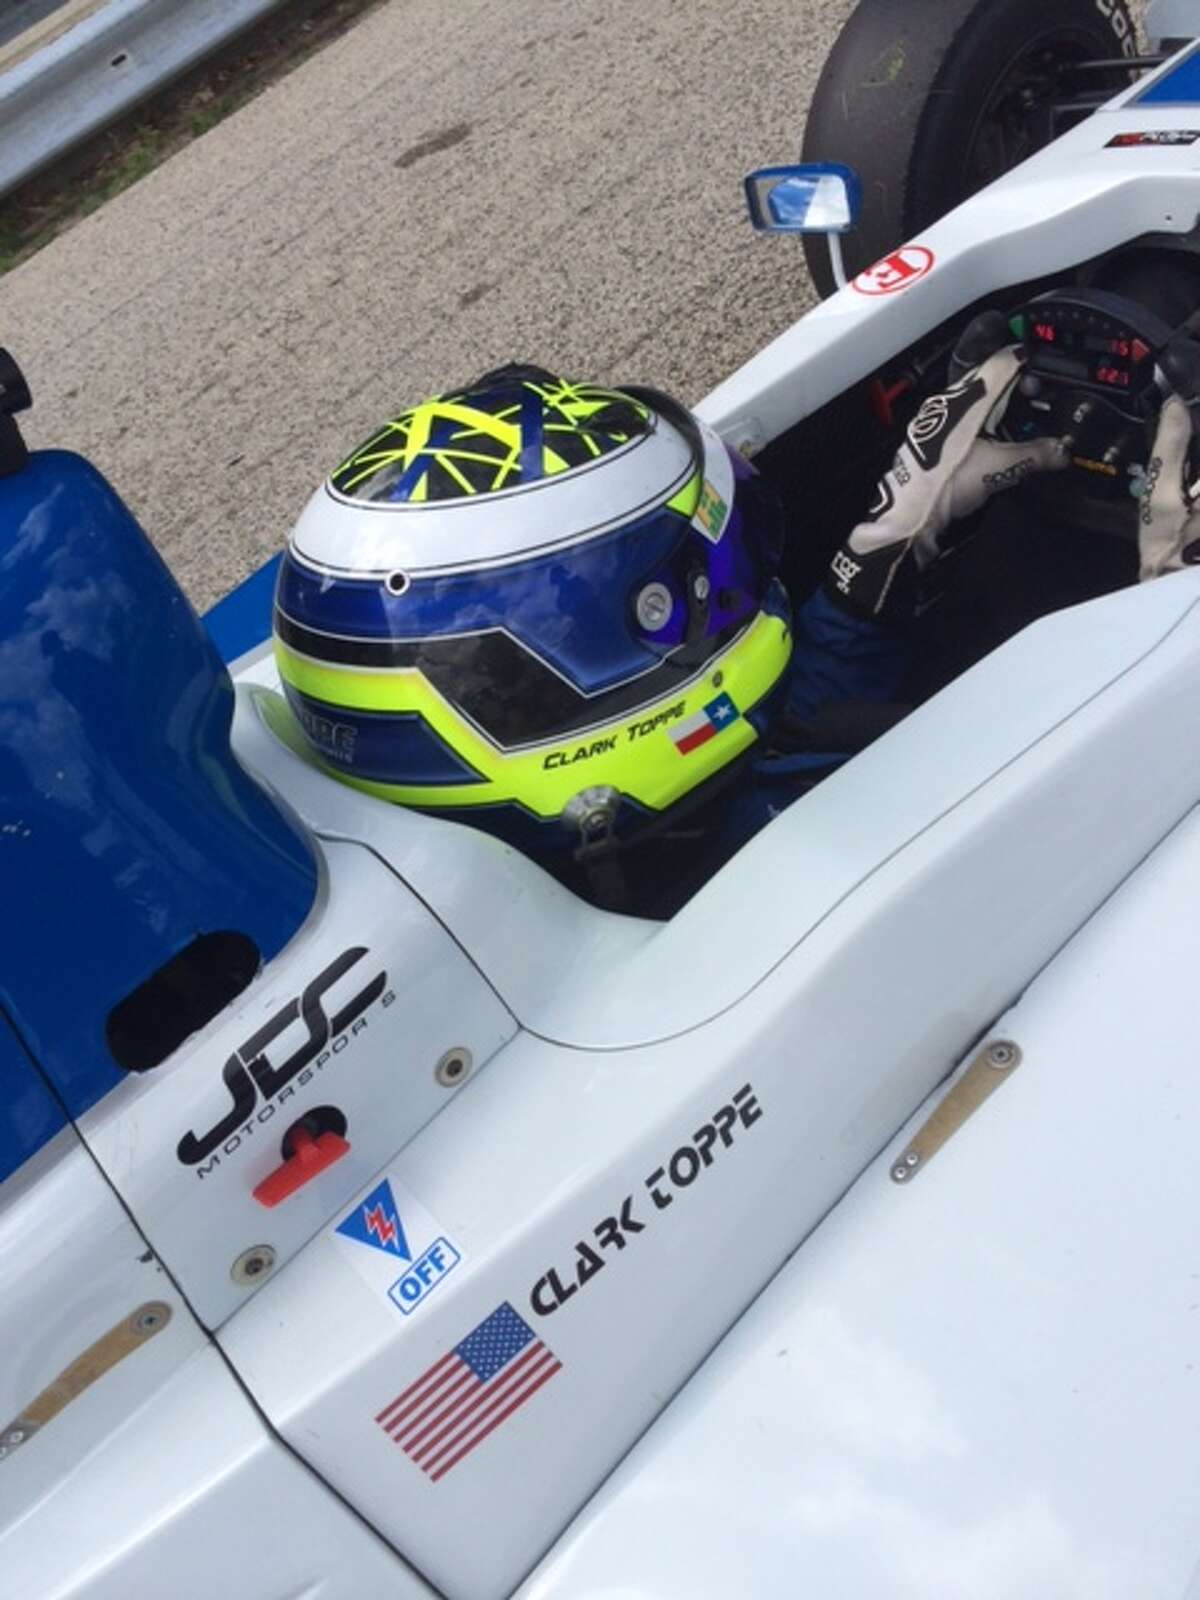 Woodlands teenager Clark Toppe will make his Pro Mazda debut at the Houston Grand Prix this weekend. The 16-year-old has been racing since he was 10.